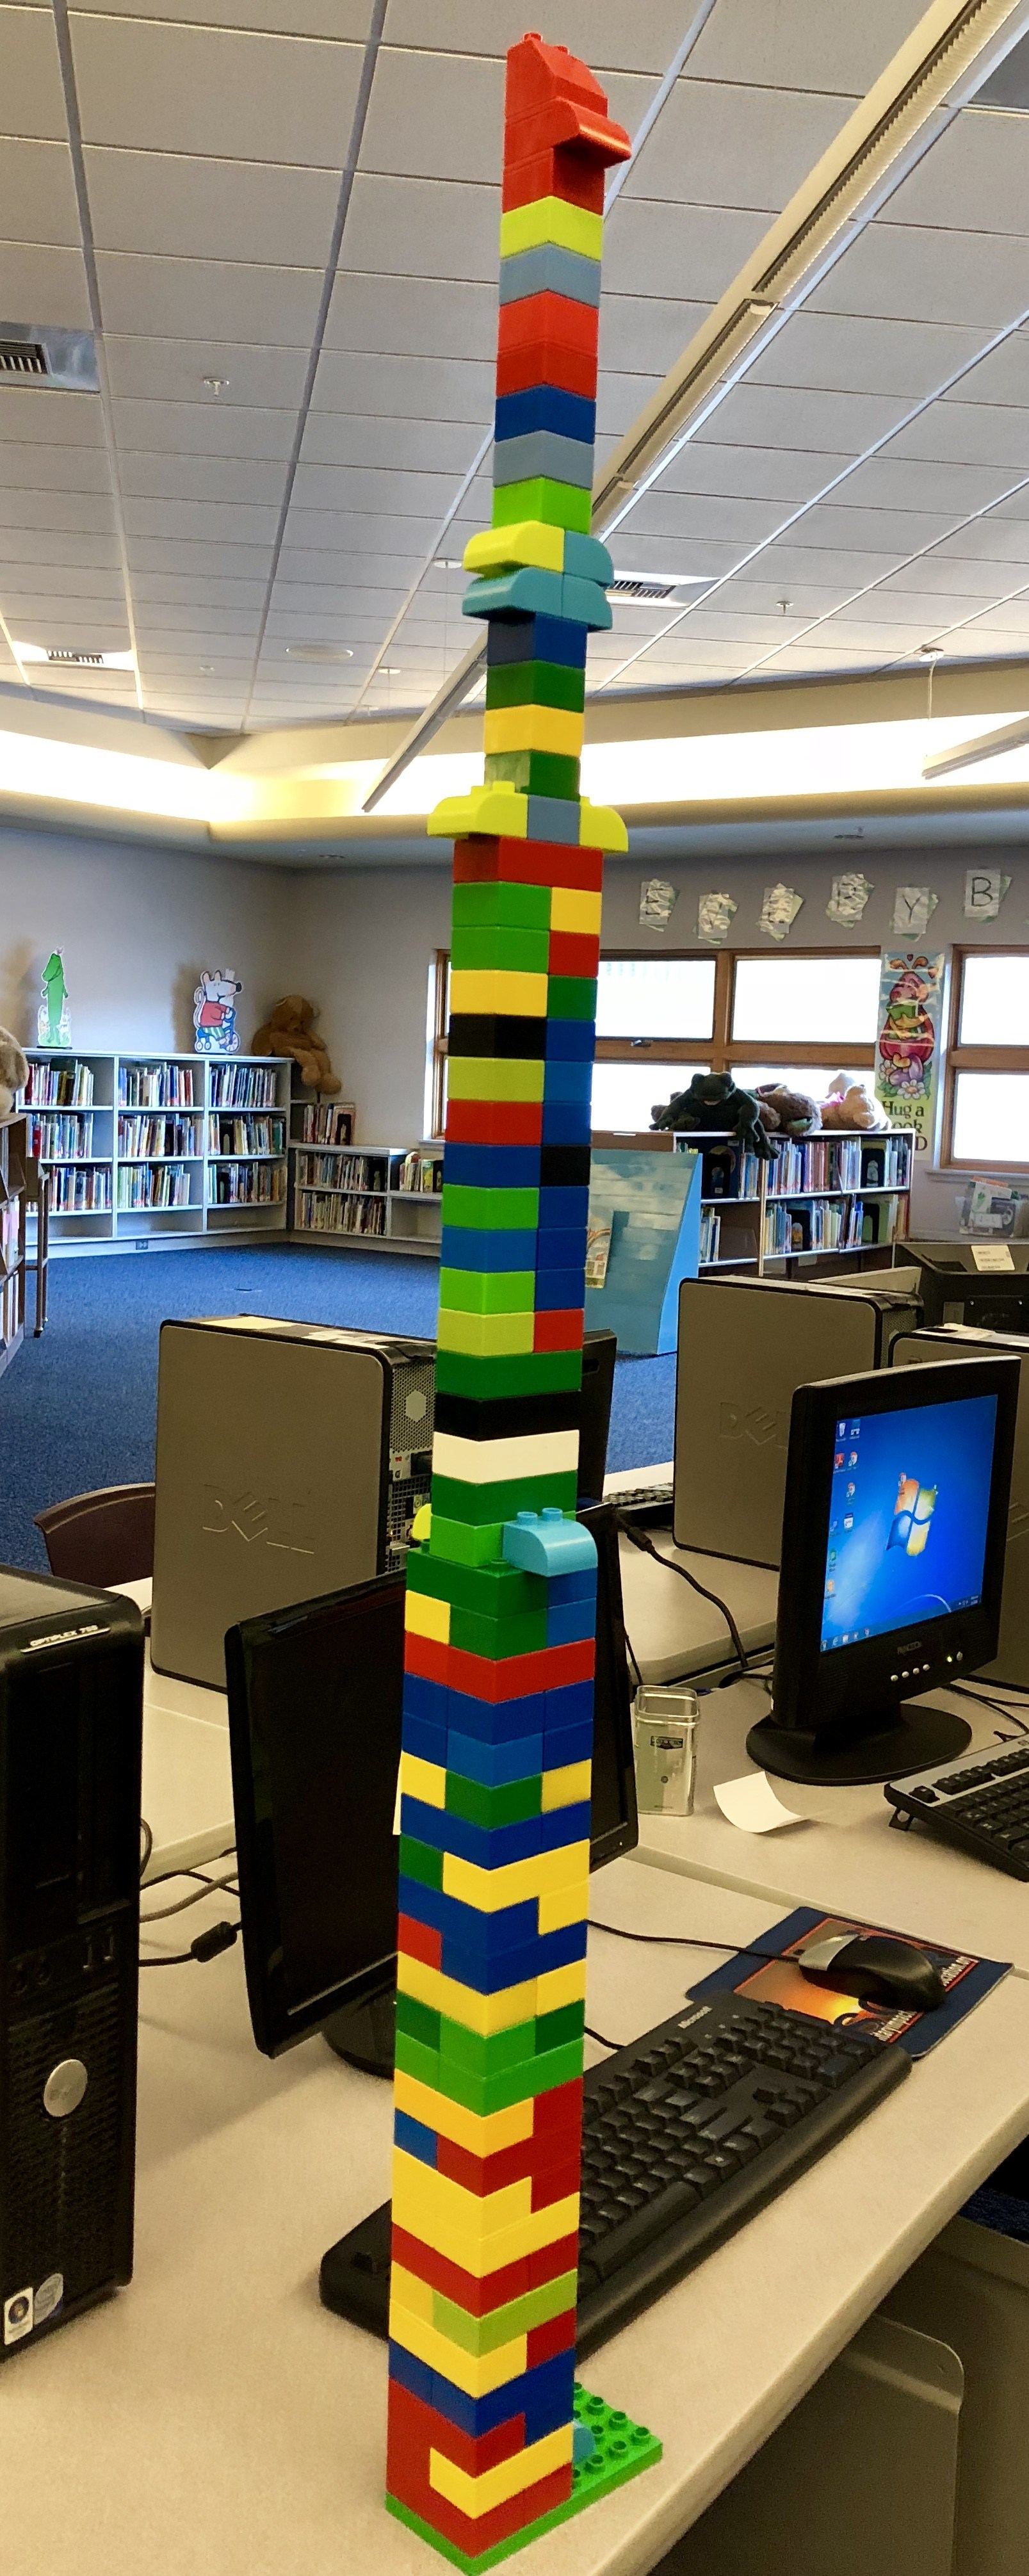 Maker space activity--lego brick towers